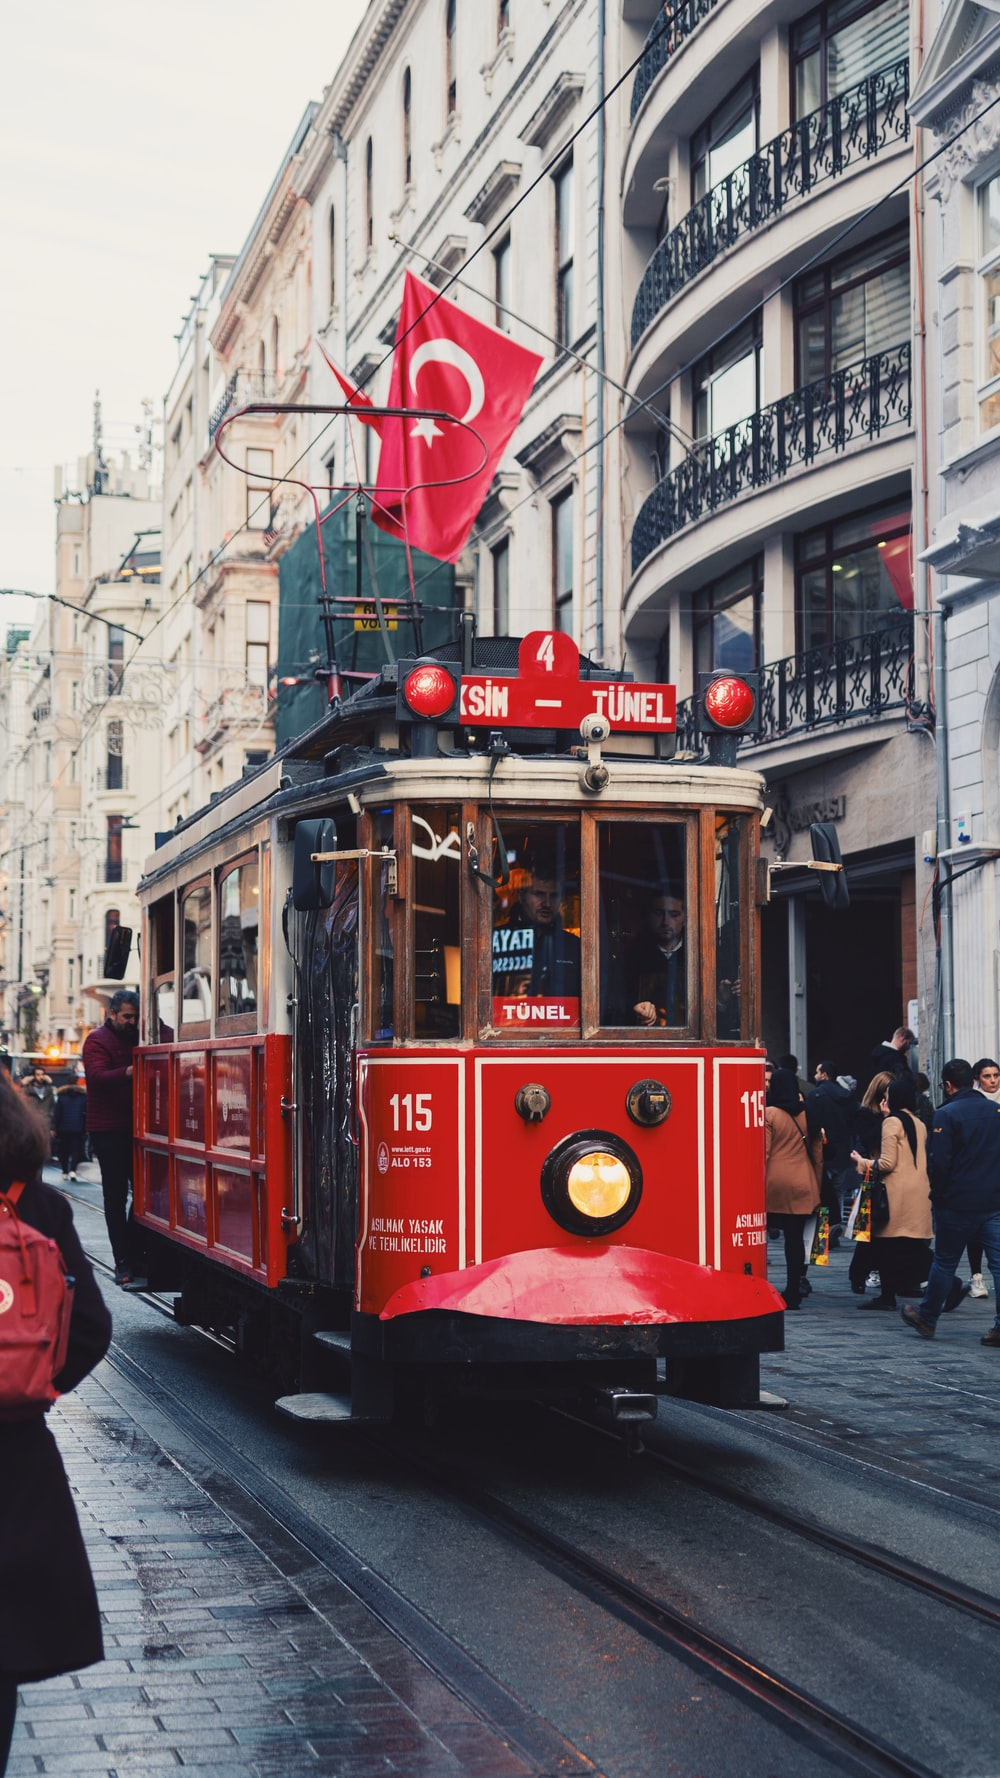 red tram on the street during daytime